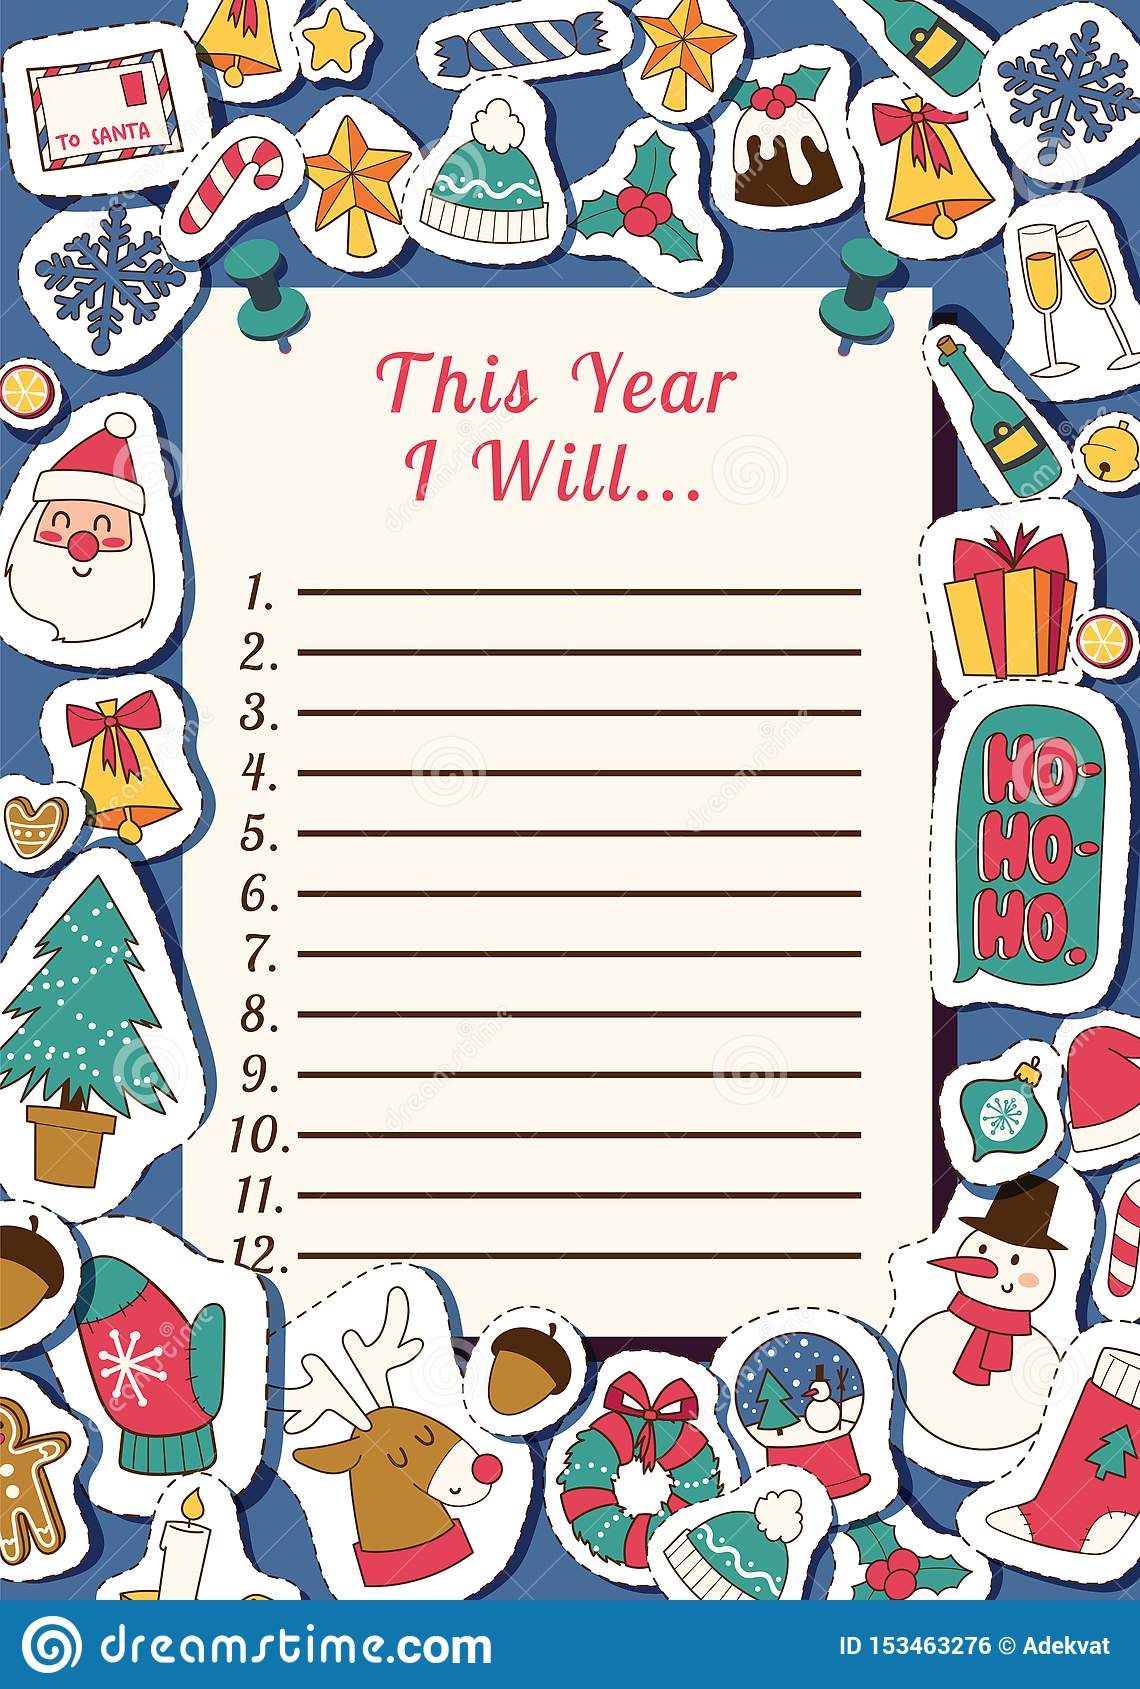 Christmas 2019 Happy New Year Santa Letter Greeting Card ...